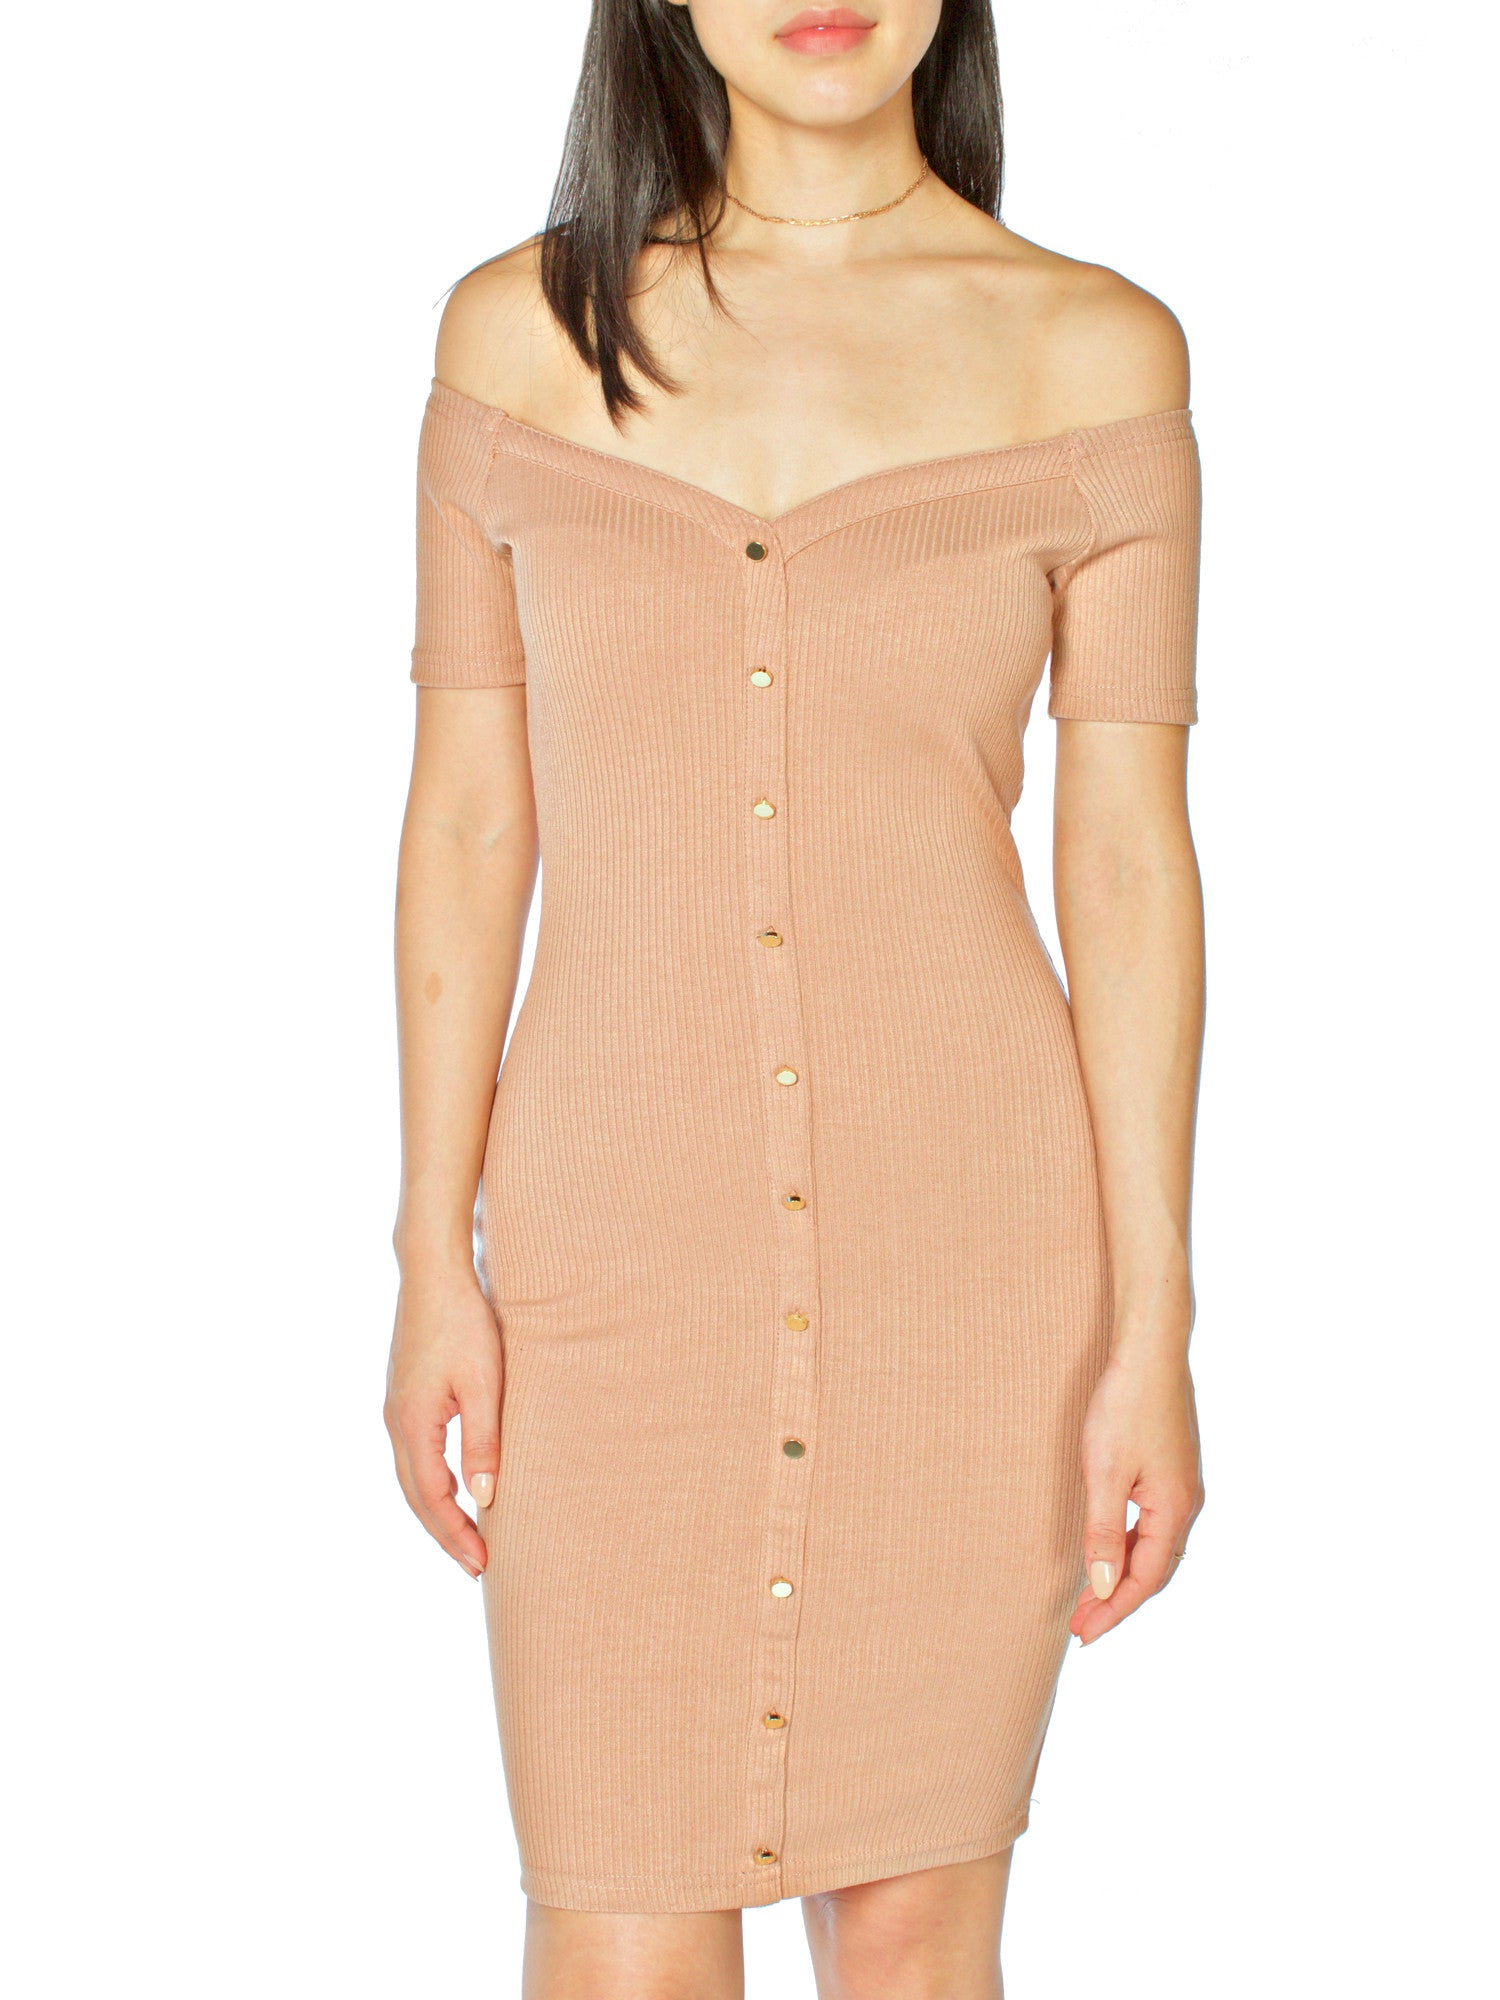 Not So Button Down Ribbed Dress - PRADEGAL